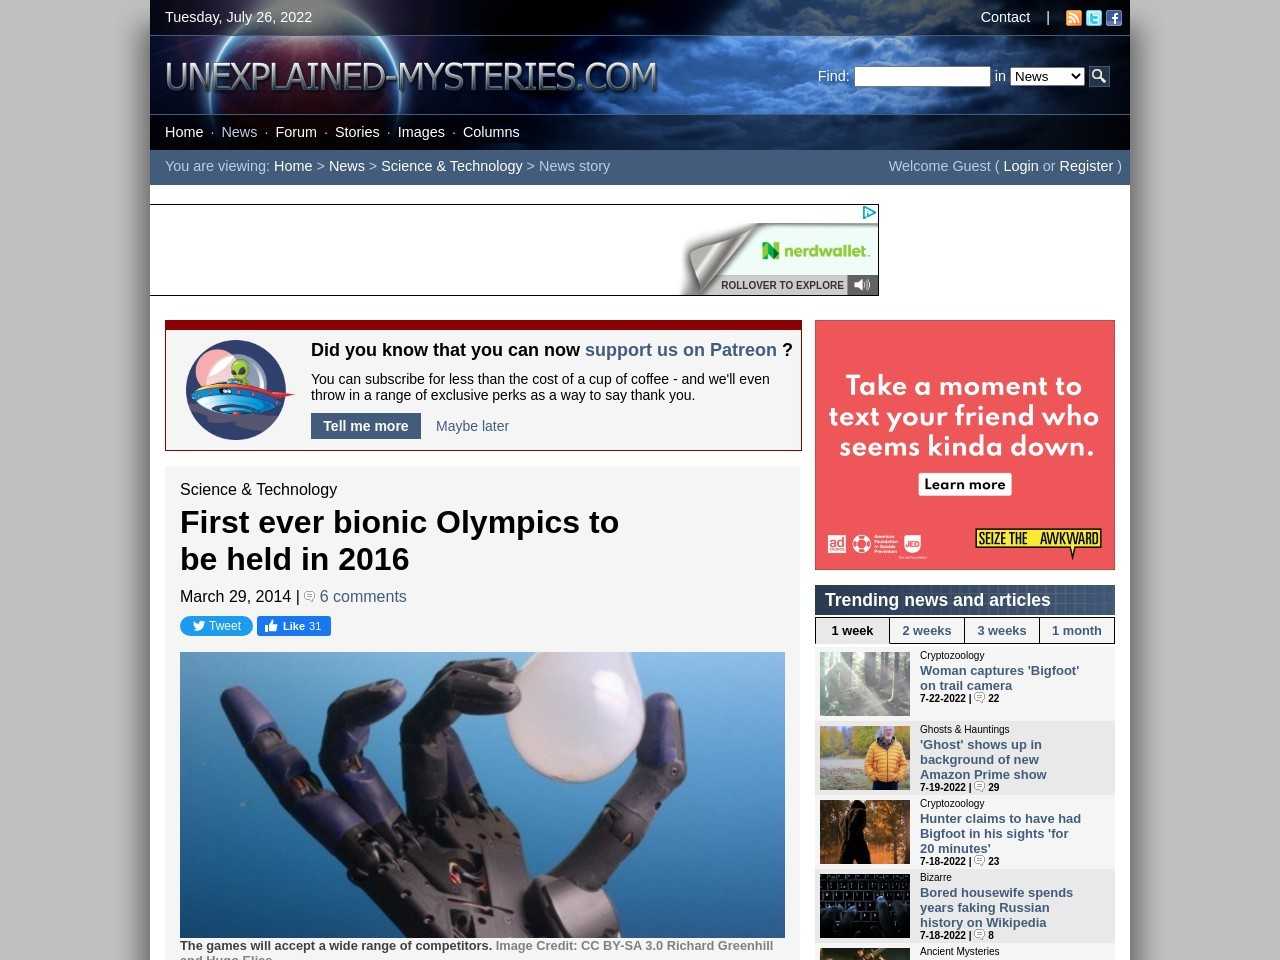 First ever bionic Olympics to be held in 2016